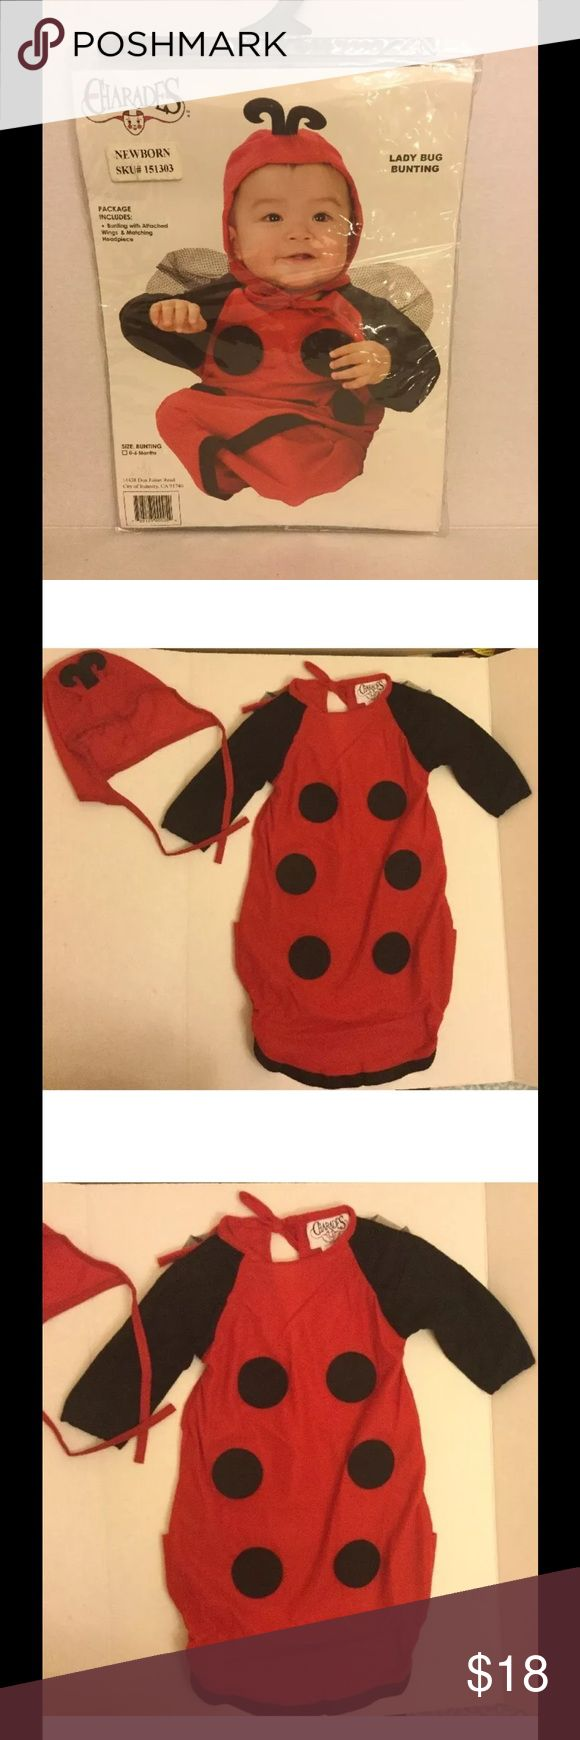 Top 25+ best Baby ladybug costume ideas on Pinterest | Ladybug ...